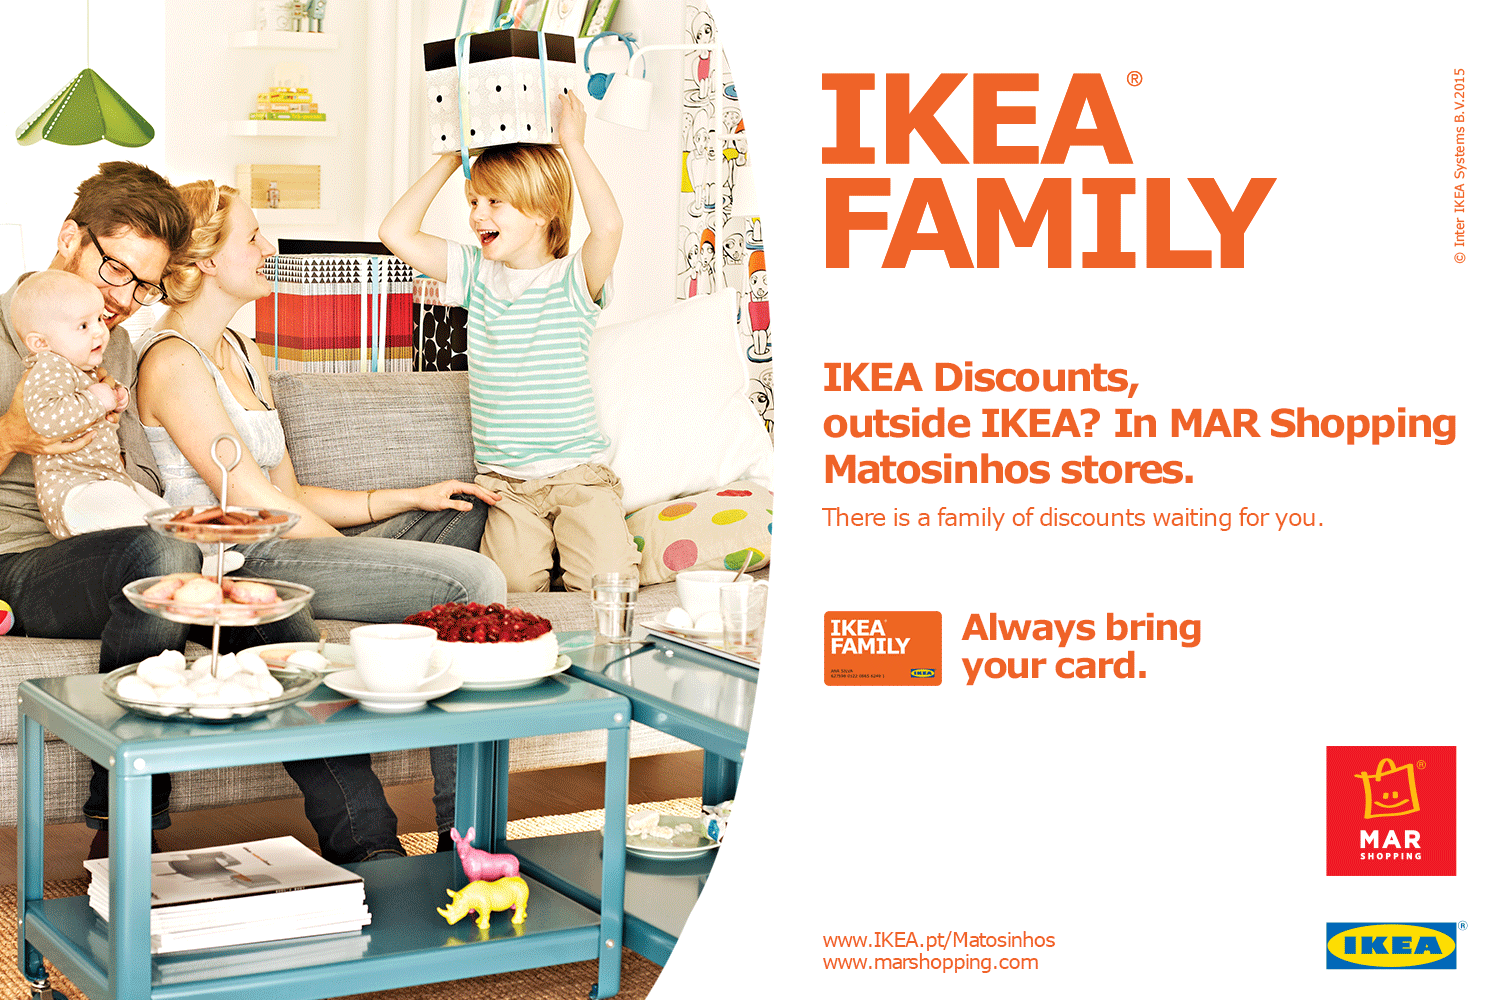 ikea family offers mar shopping matosinhos ikea family. Black Bedroom Furniture Sets. Home Design Ideas